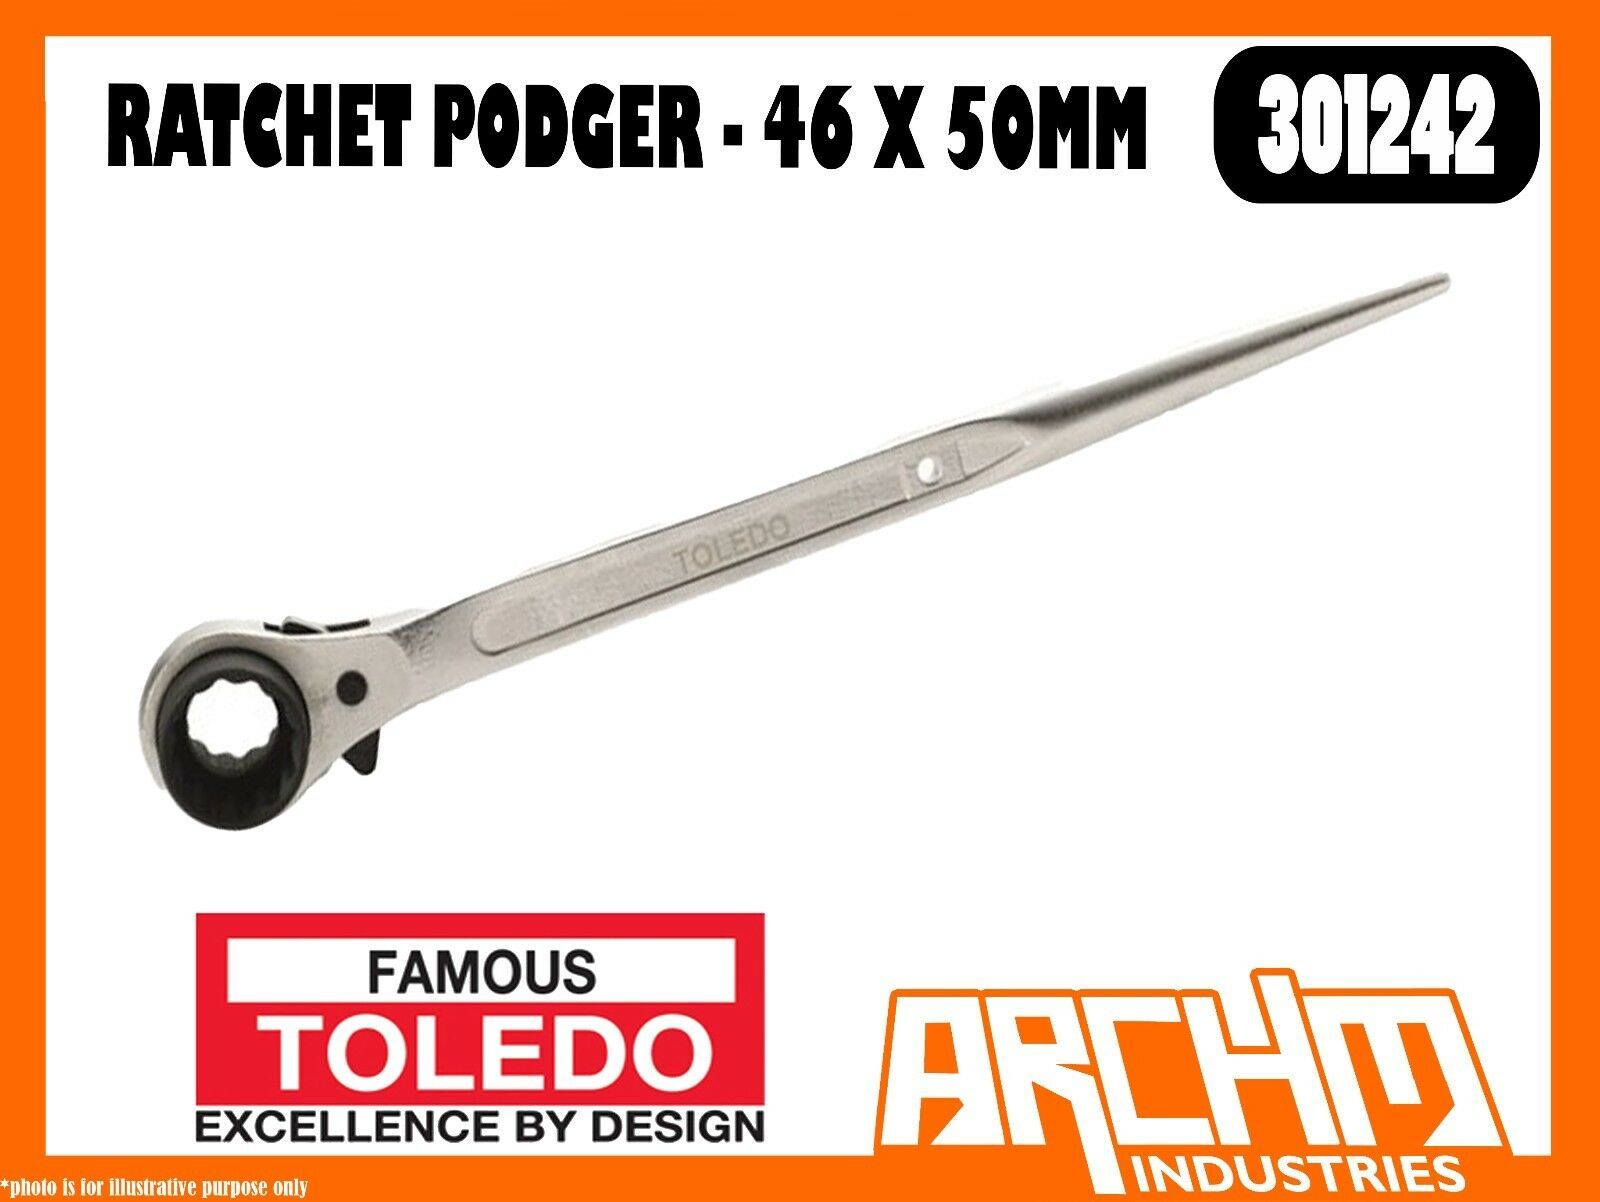 TOLEDO 301242 - RATCHET PODGER - 46 X 50MM - METRIC